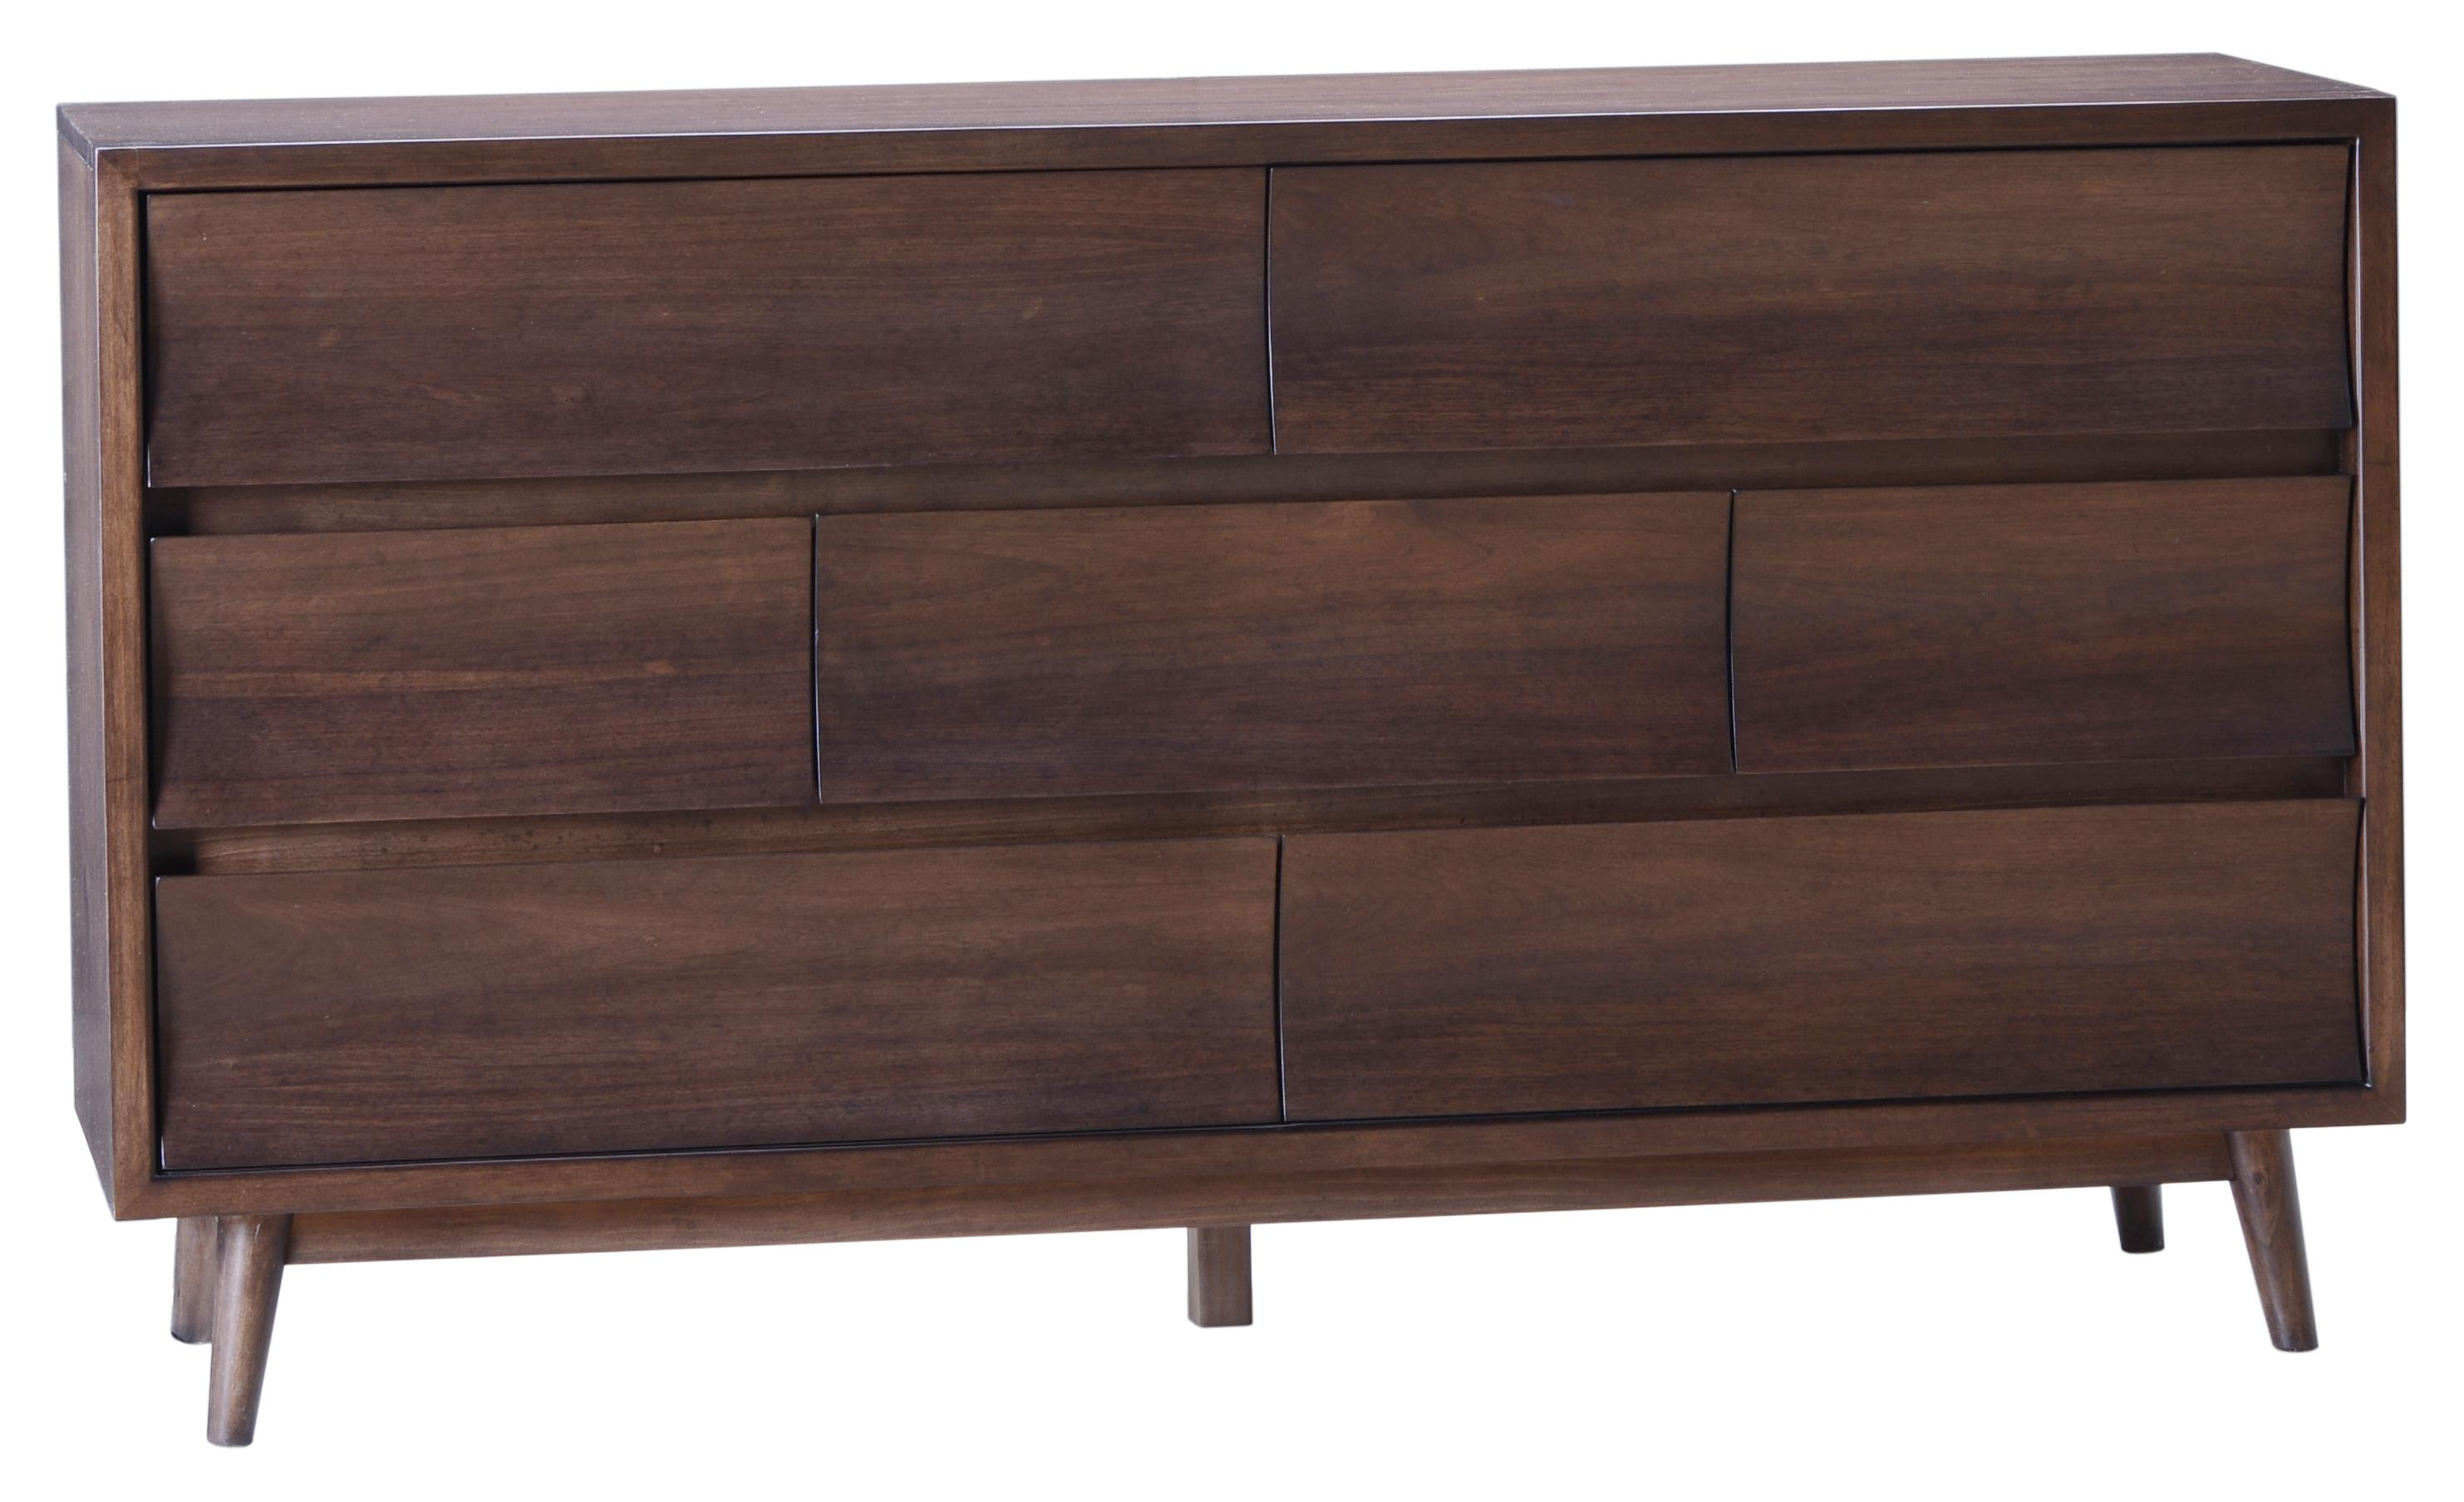 Mid century modern furniture dresser for Amazon mid century modern furniture